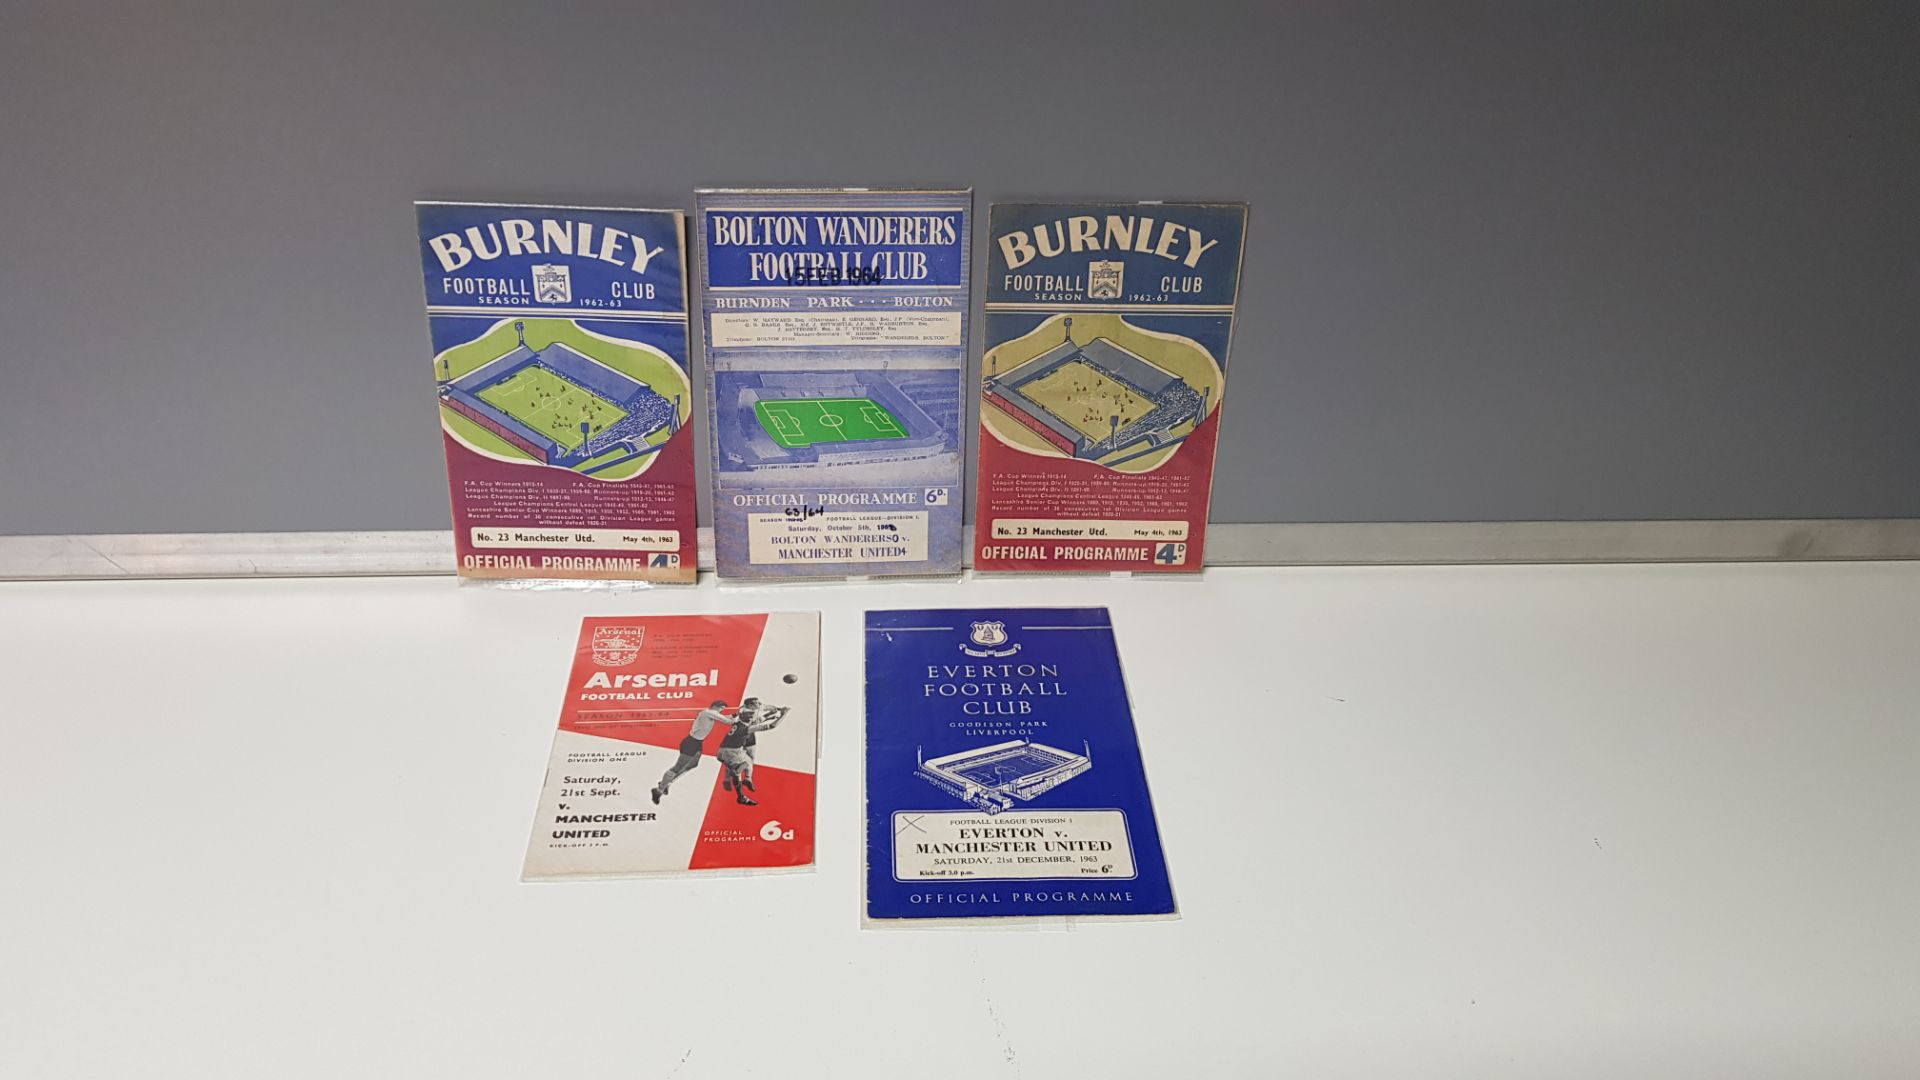 5 X MANCHESTER UNITED AWAY PROGRAMMES FROM THE 1963 SEASON TO INCLUDE MANCHESTER UNITED VS BOLTON